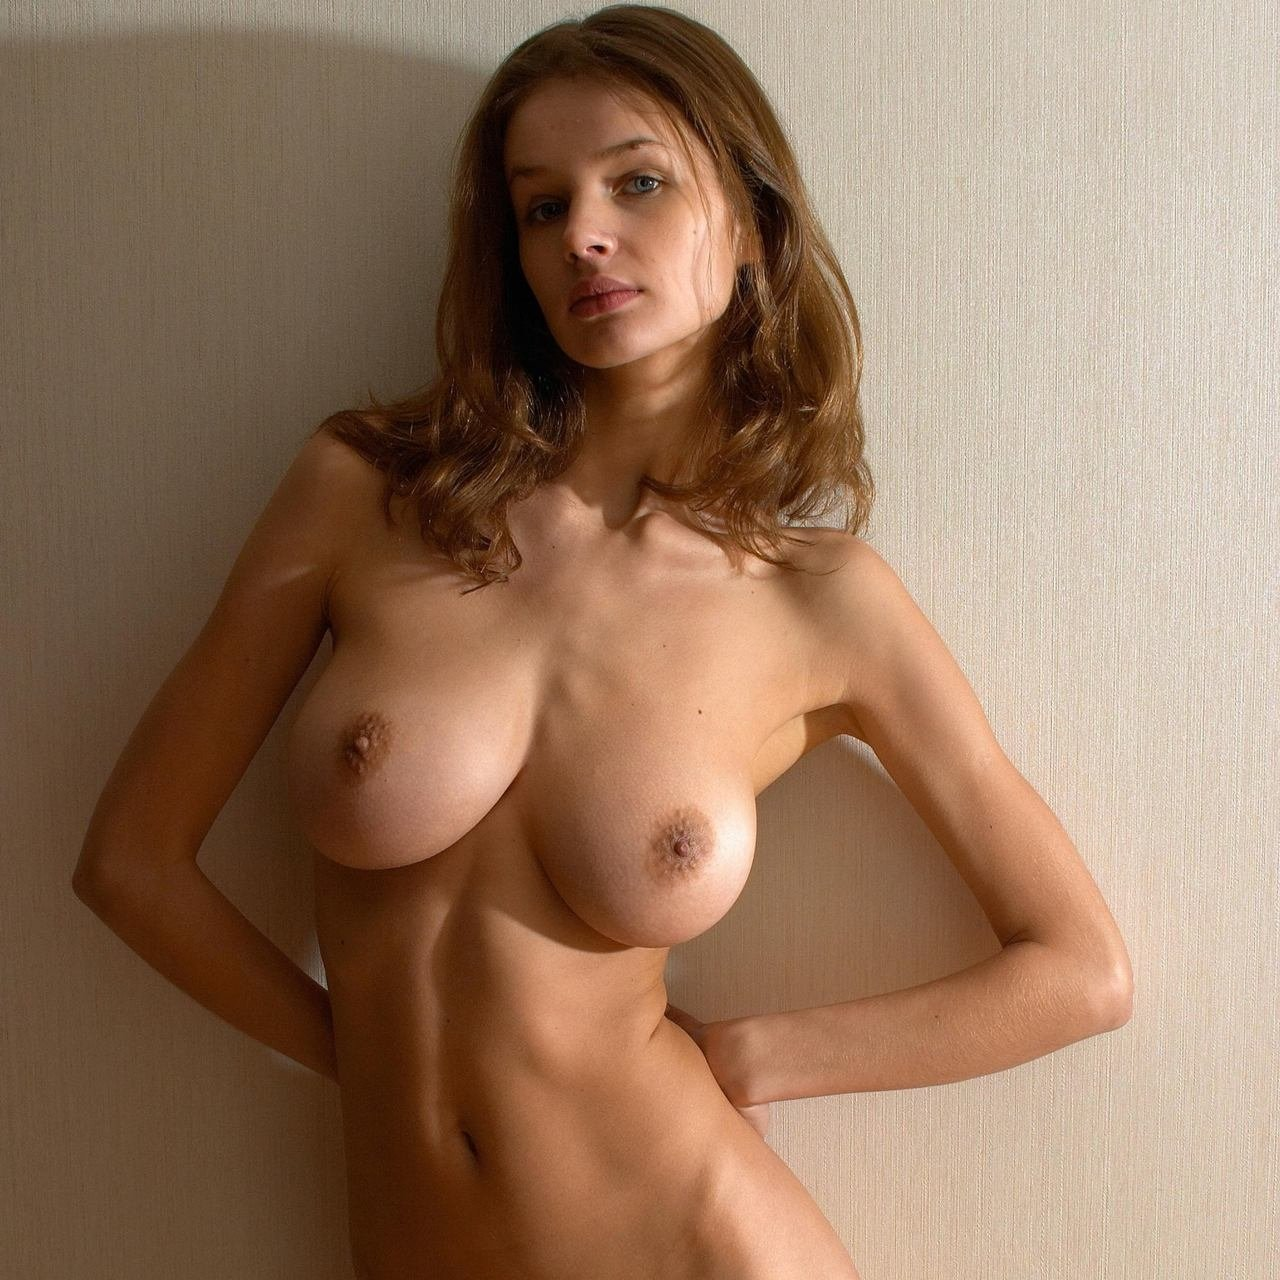 Naked skinny girls with big boobs